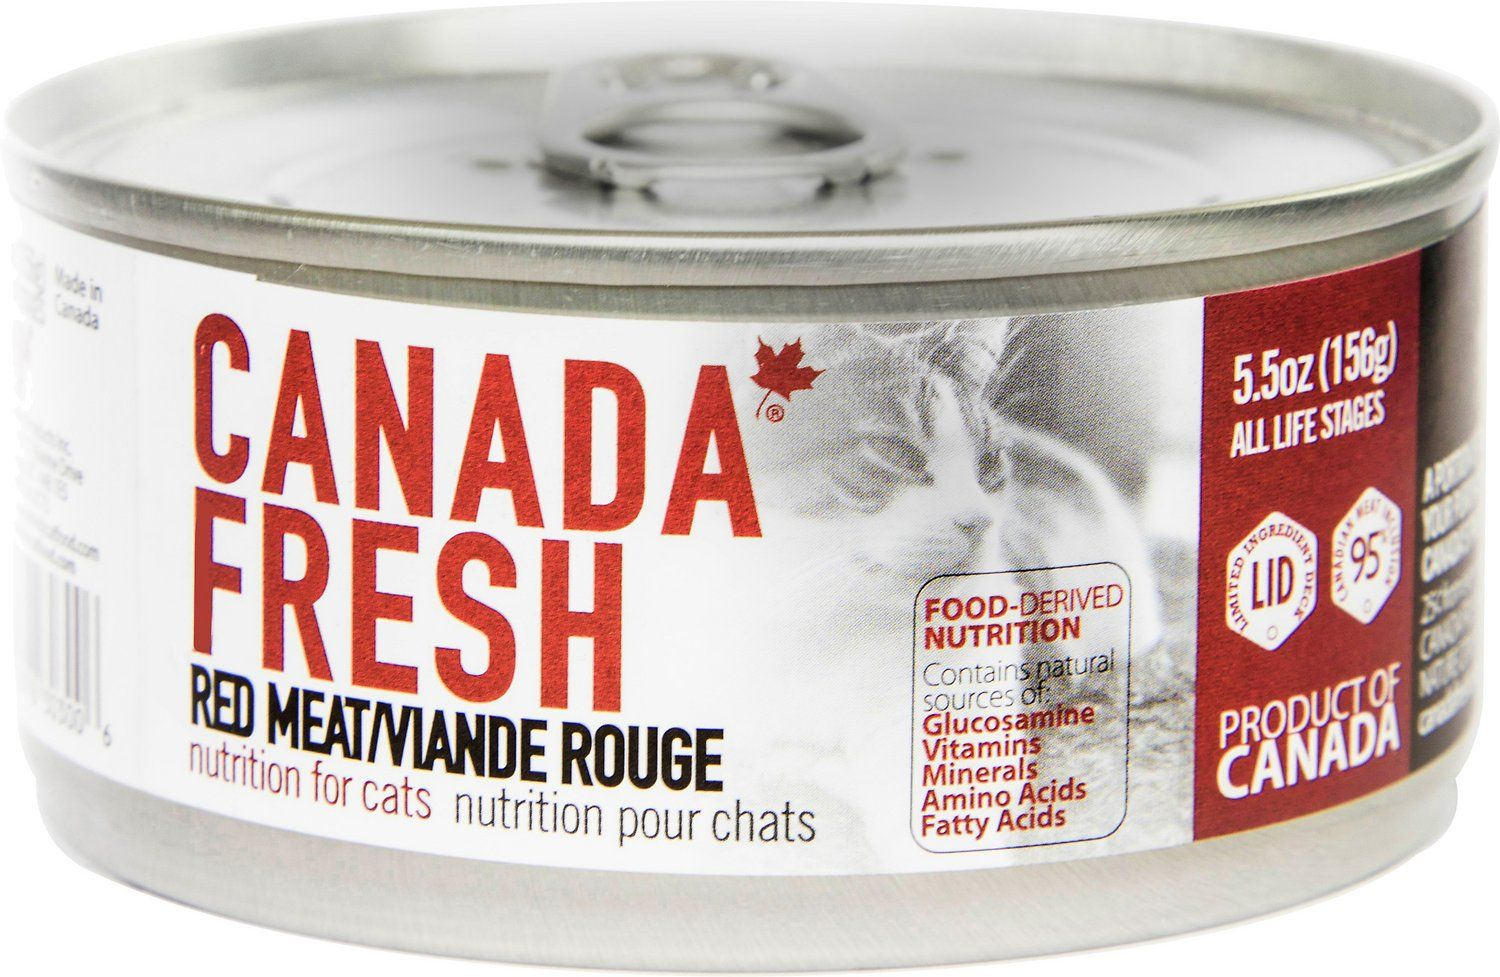 Canada Fresh Red Meat Canned Cat Food Canned cat food